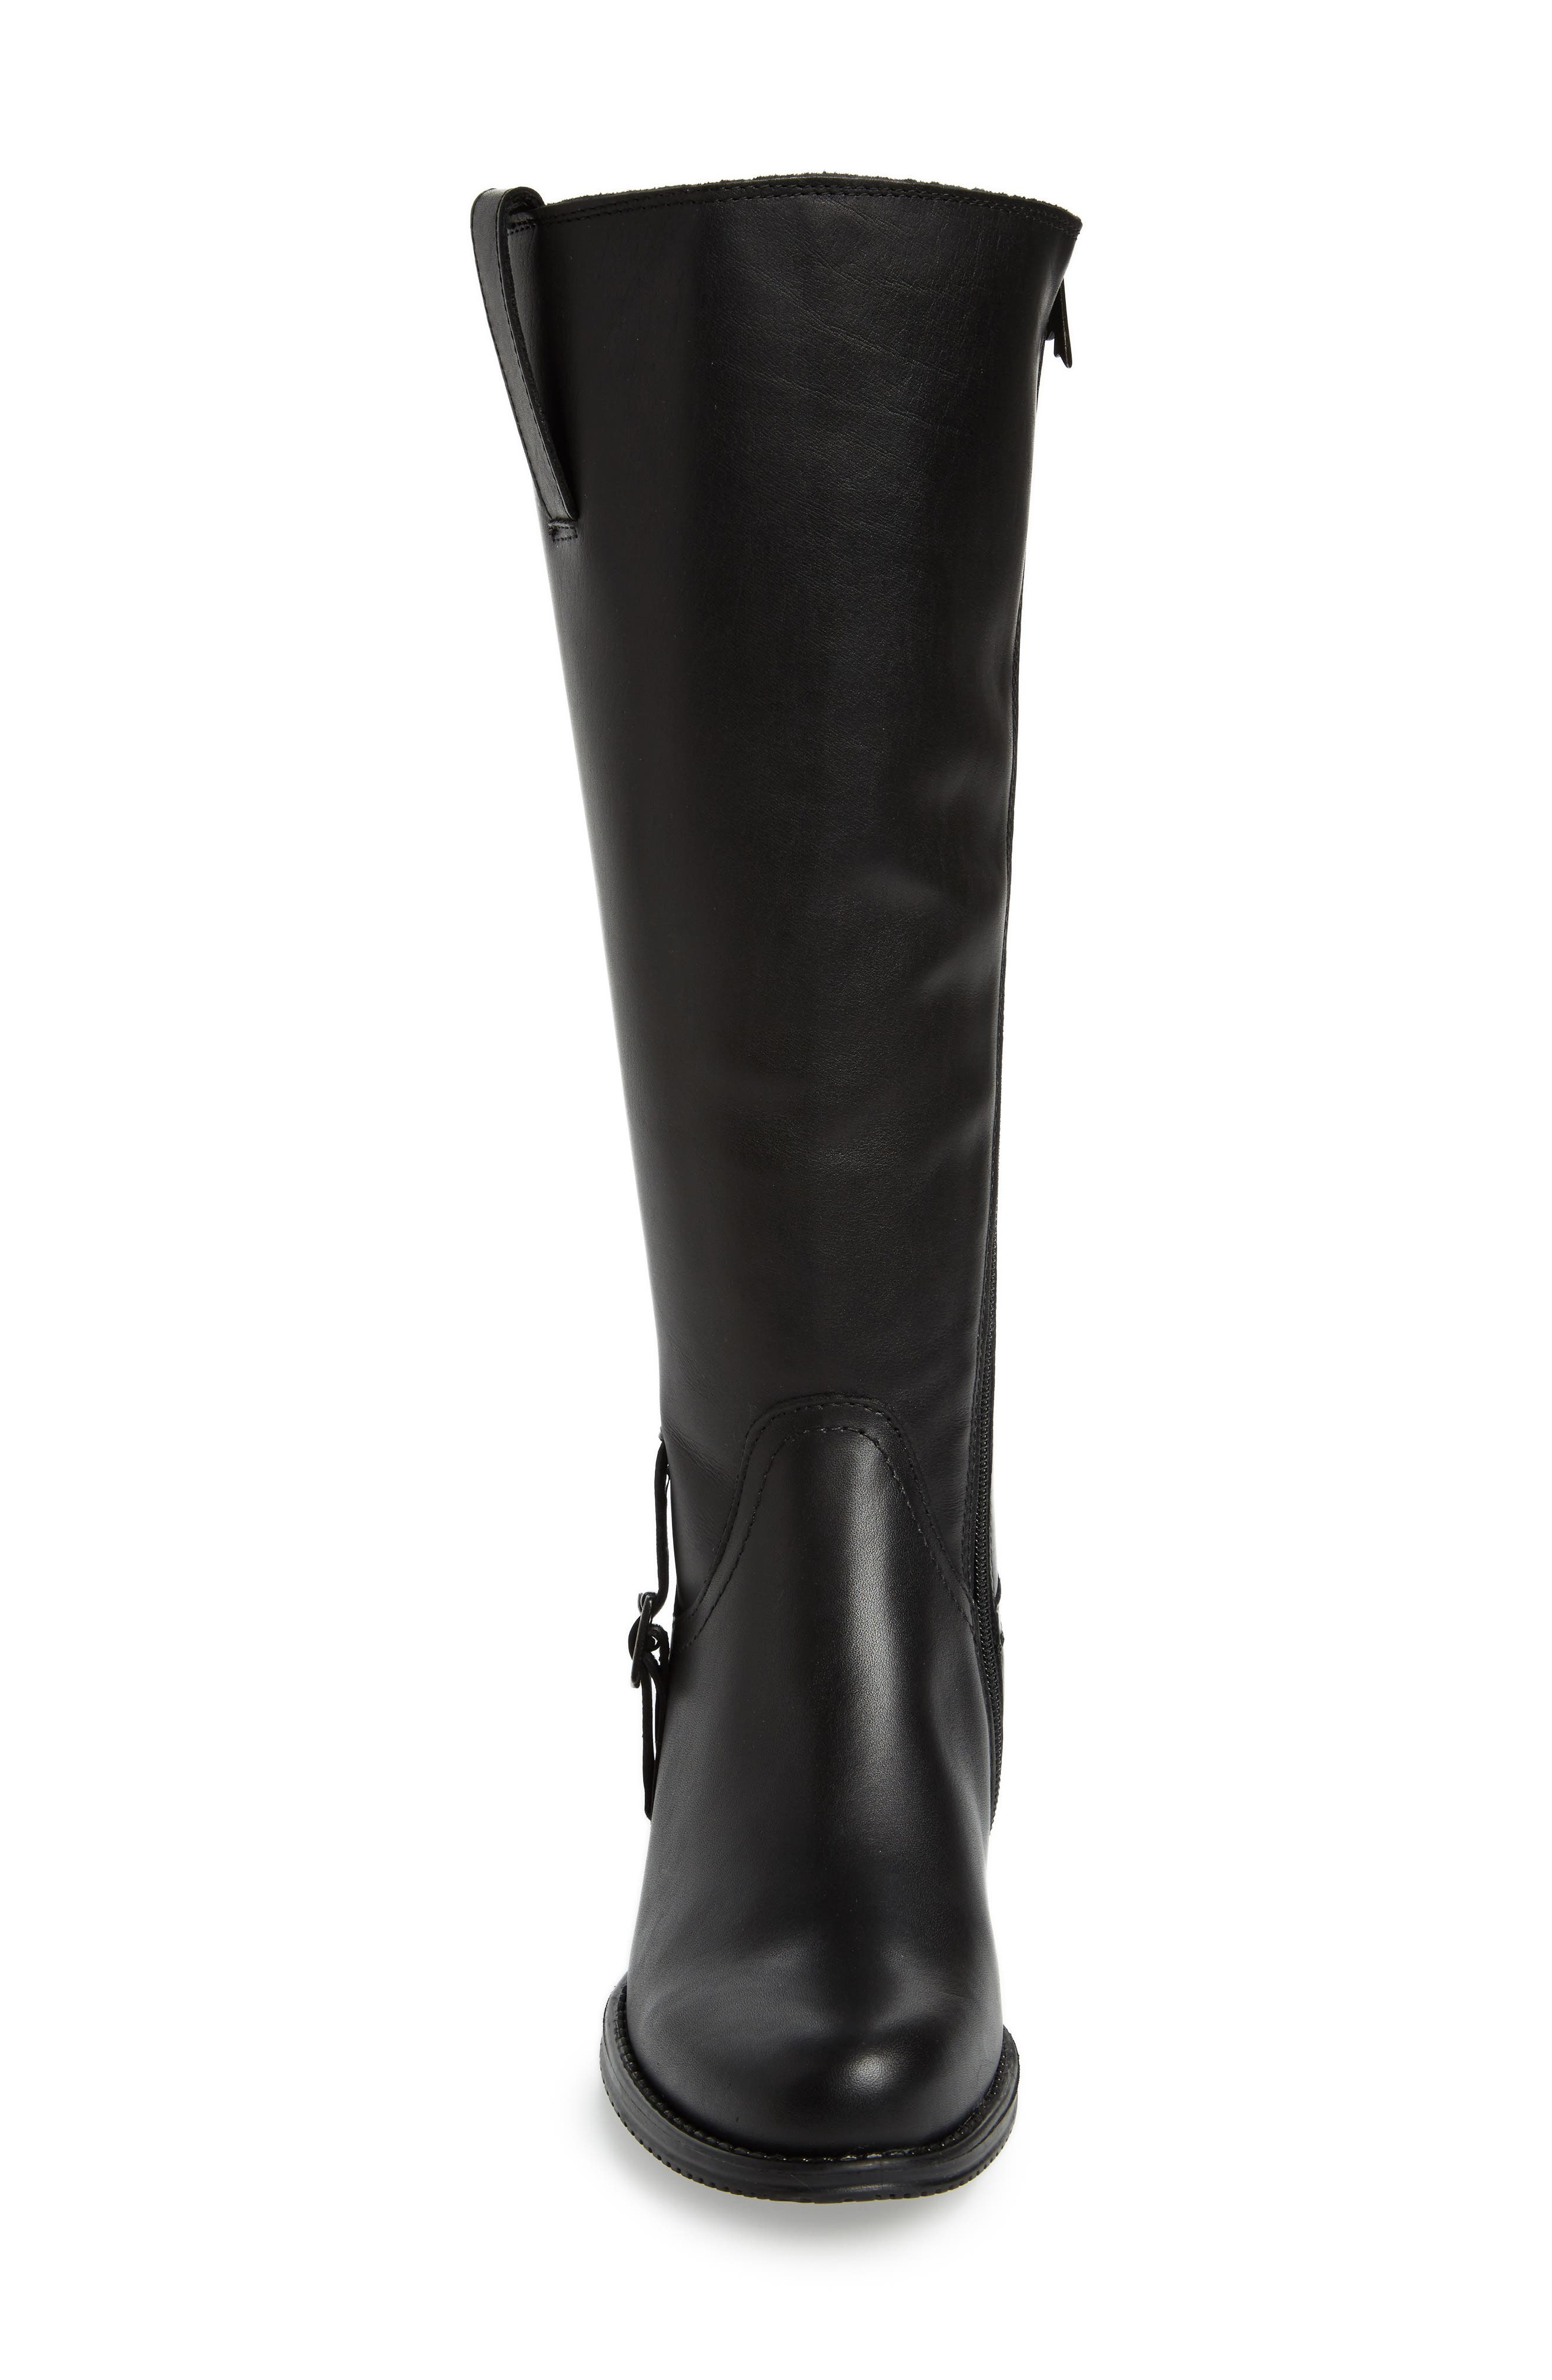 Dogueno Waterproof Boot,                             Alternate thumbnail 4, color,                             Black Leather